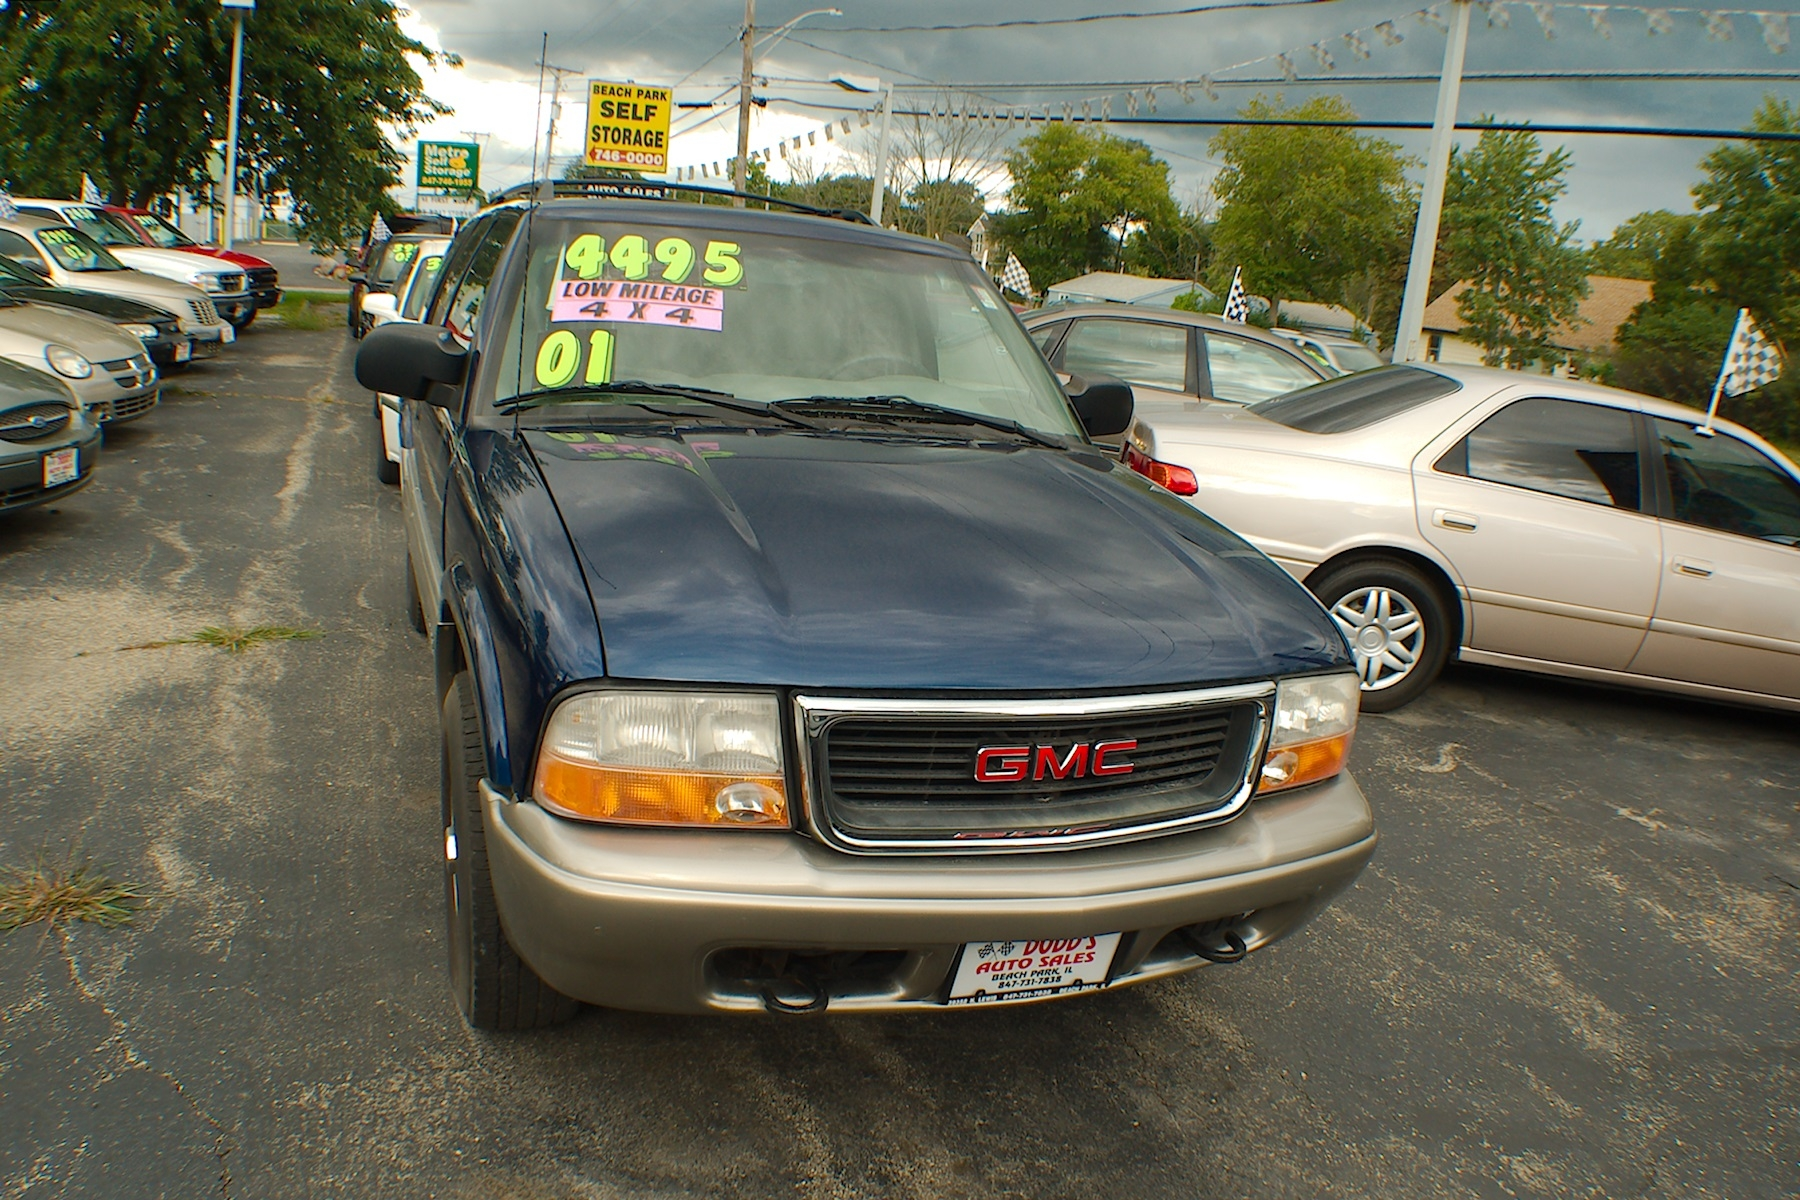 sale news for jimmy gmc